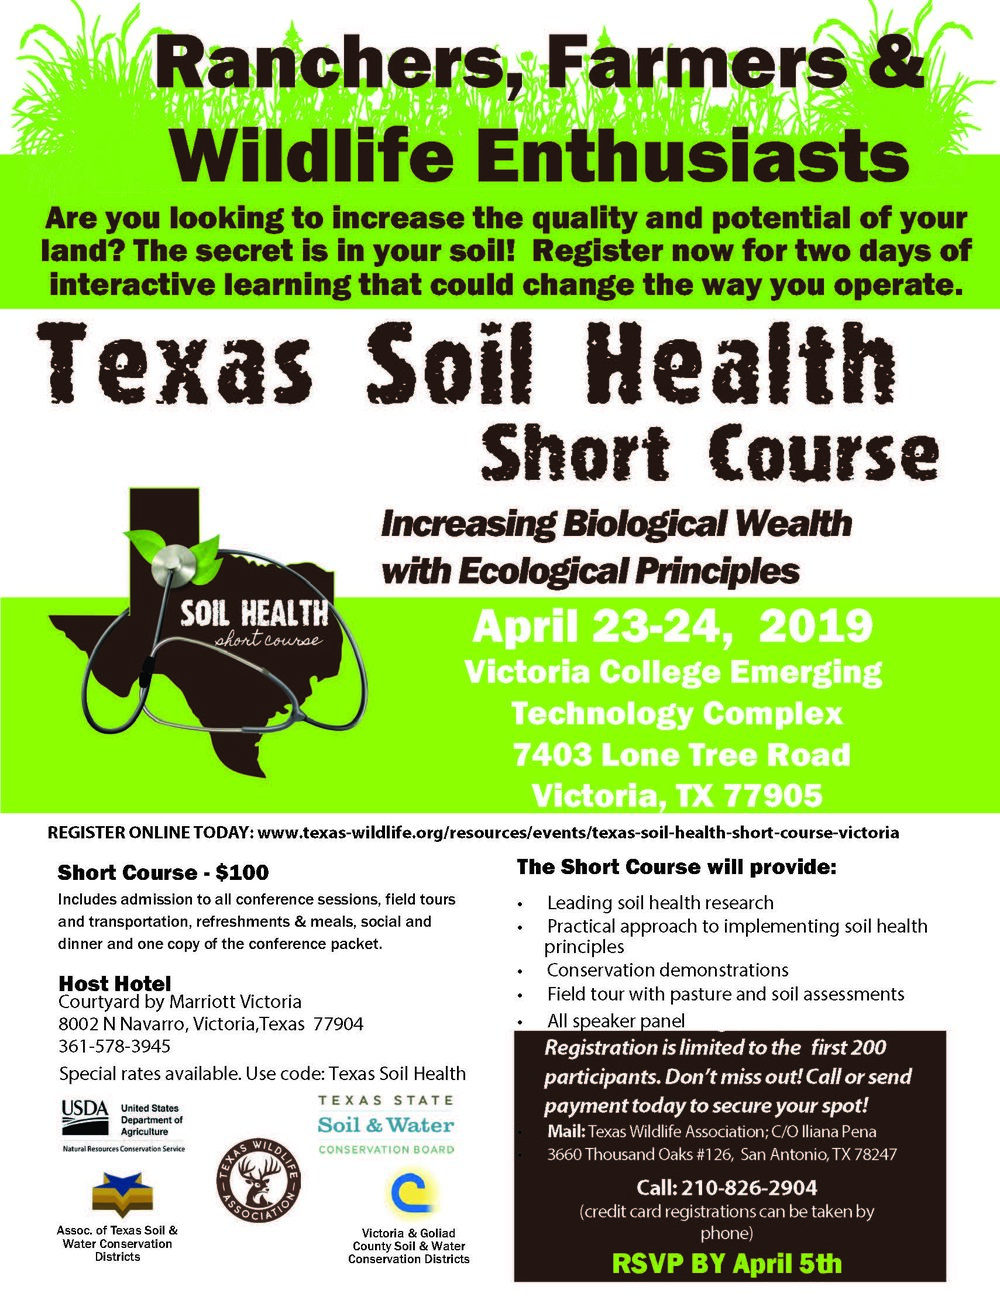 Texas Soil Health Short Course Flyer 1 - Victoria 2019.jpg